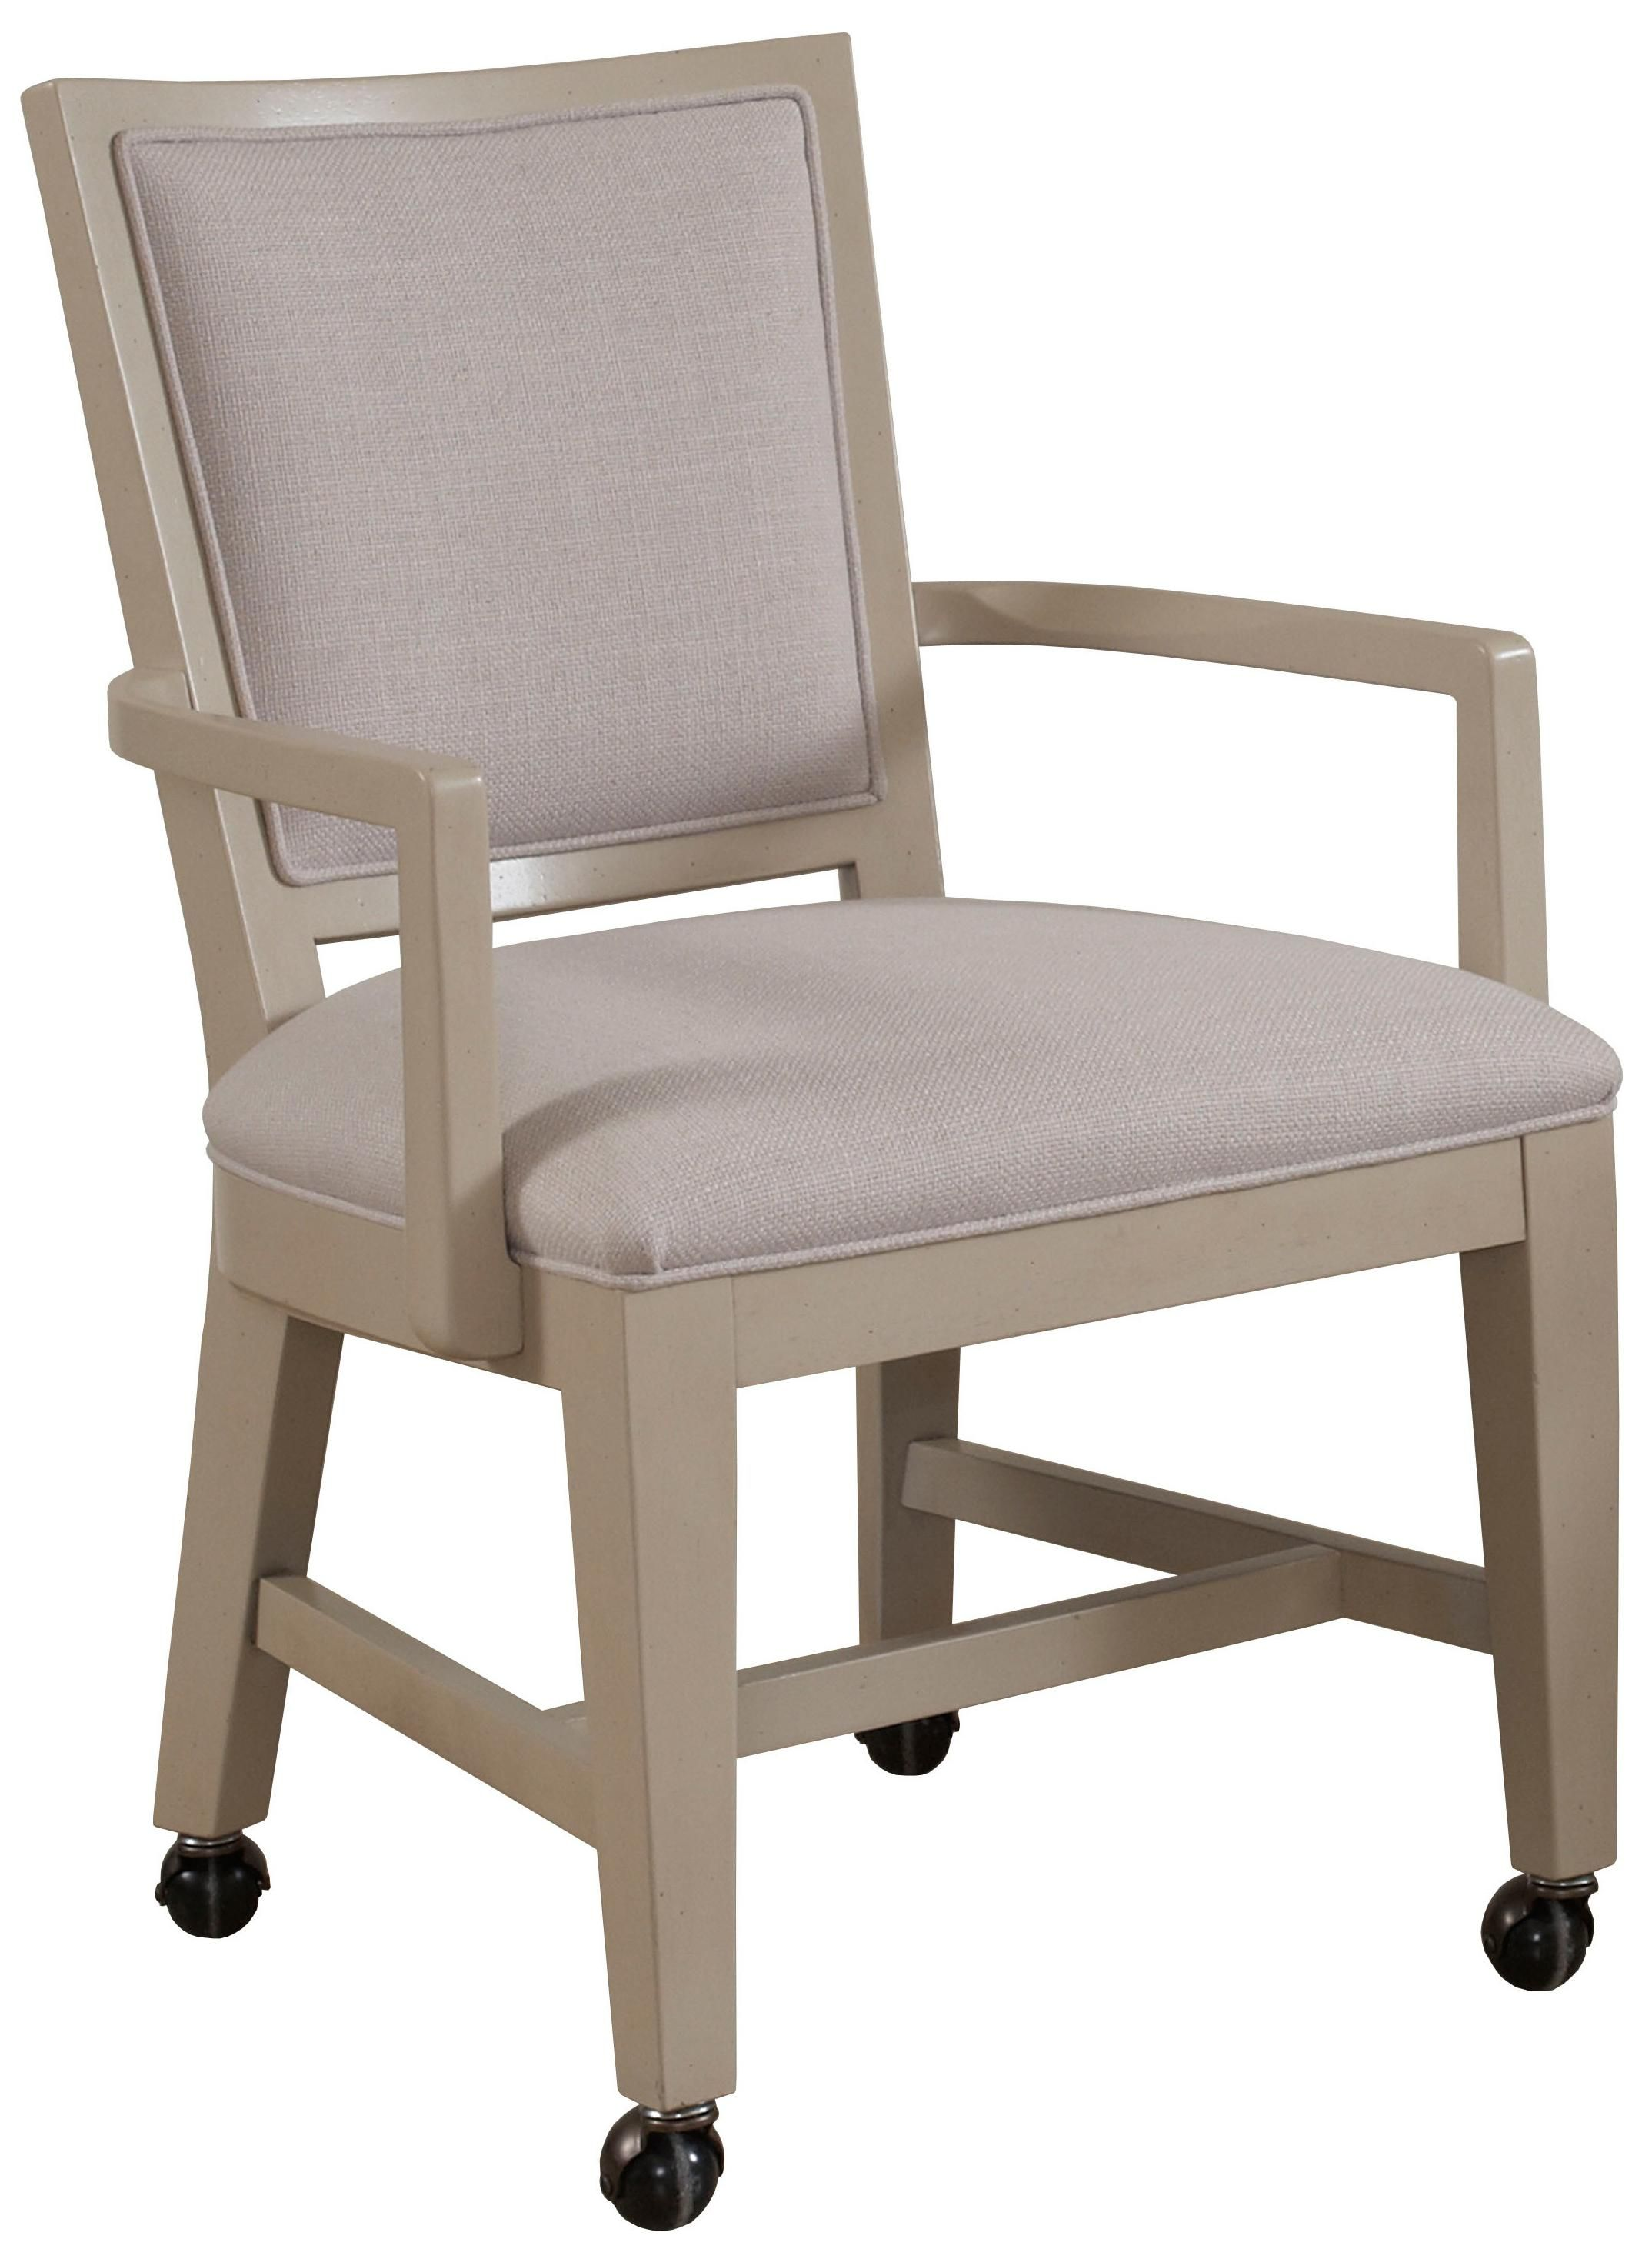 Dining Creston Party Chair By Drexel Heritage  At Jacksonville Furniture  Mart